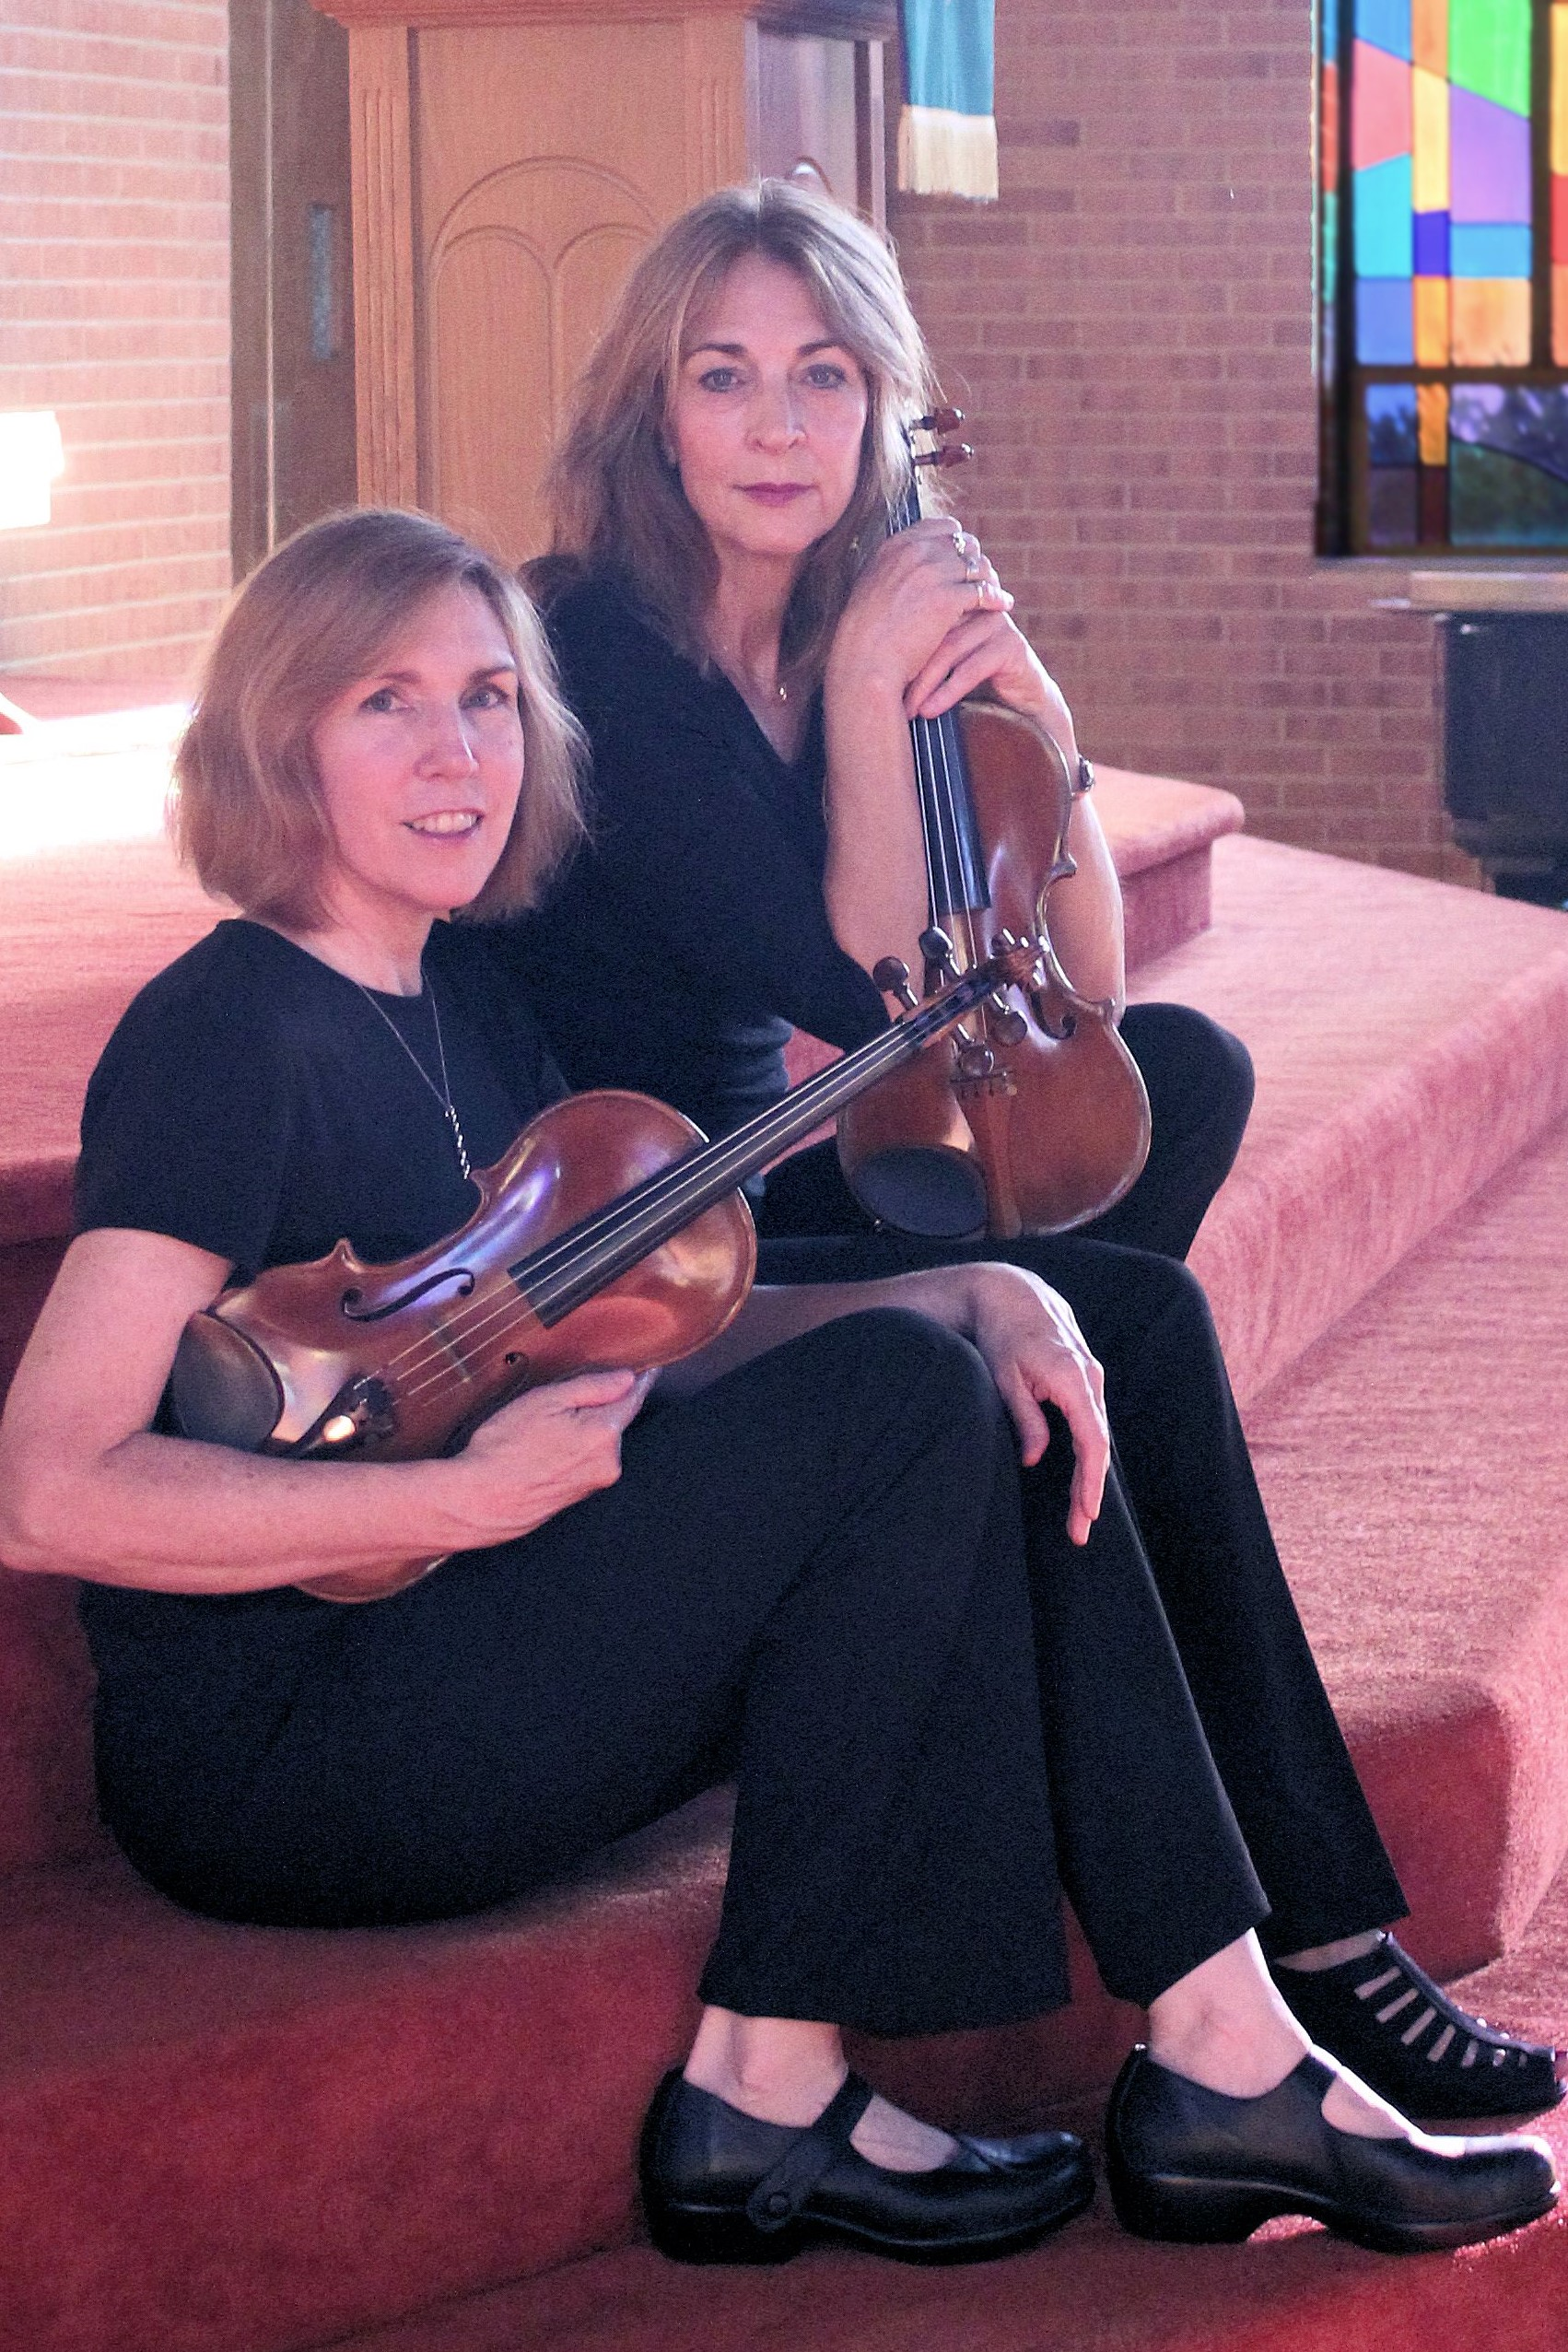 Margie Heath and Jill Foster from Jolie Deux RVA violin duo sitting on steps